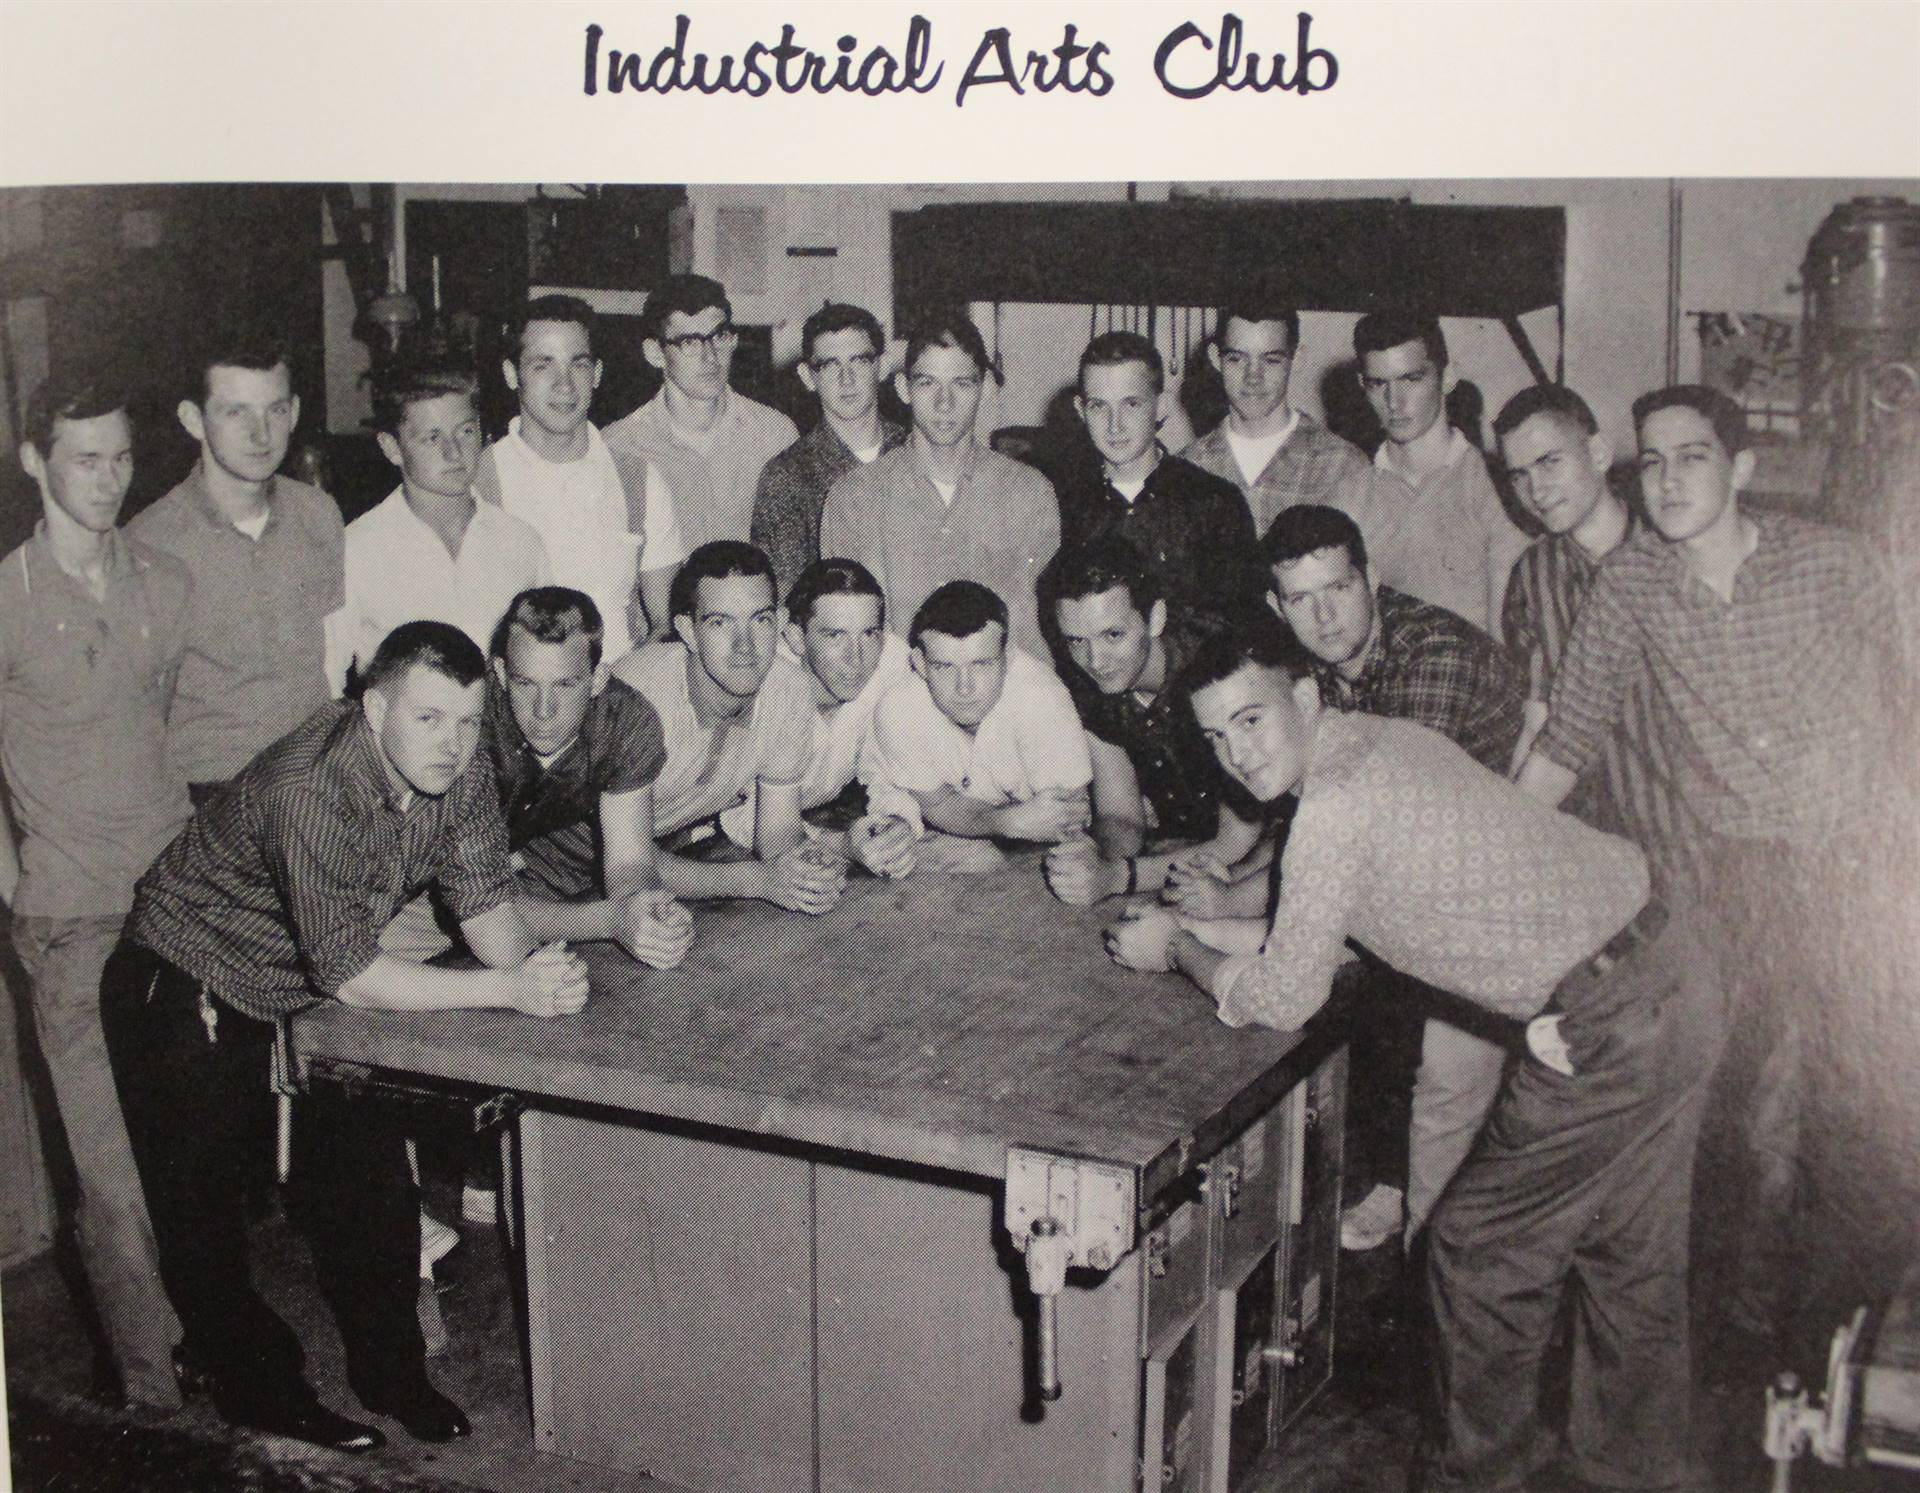 1964 Industrial Arts Club